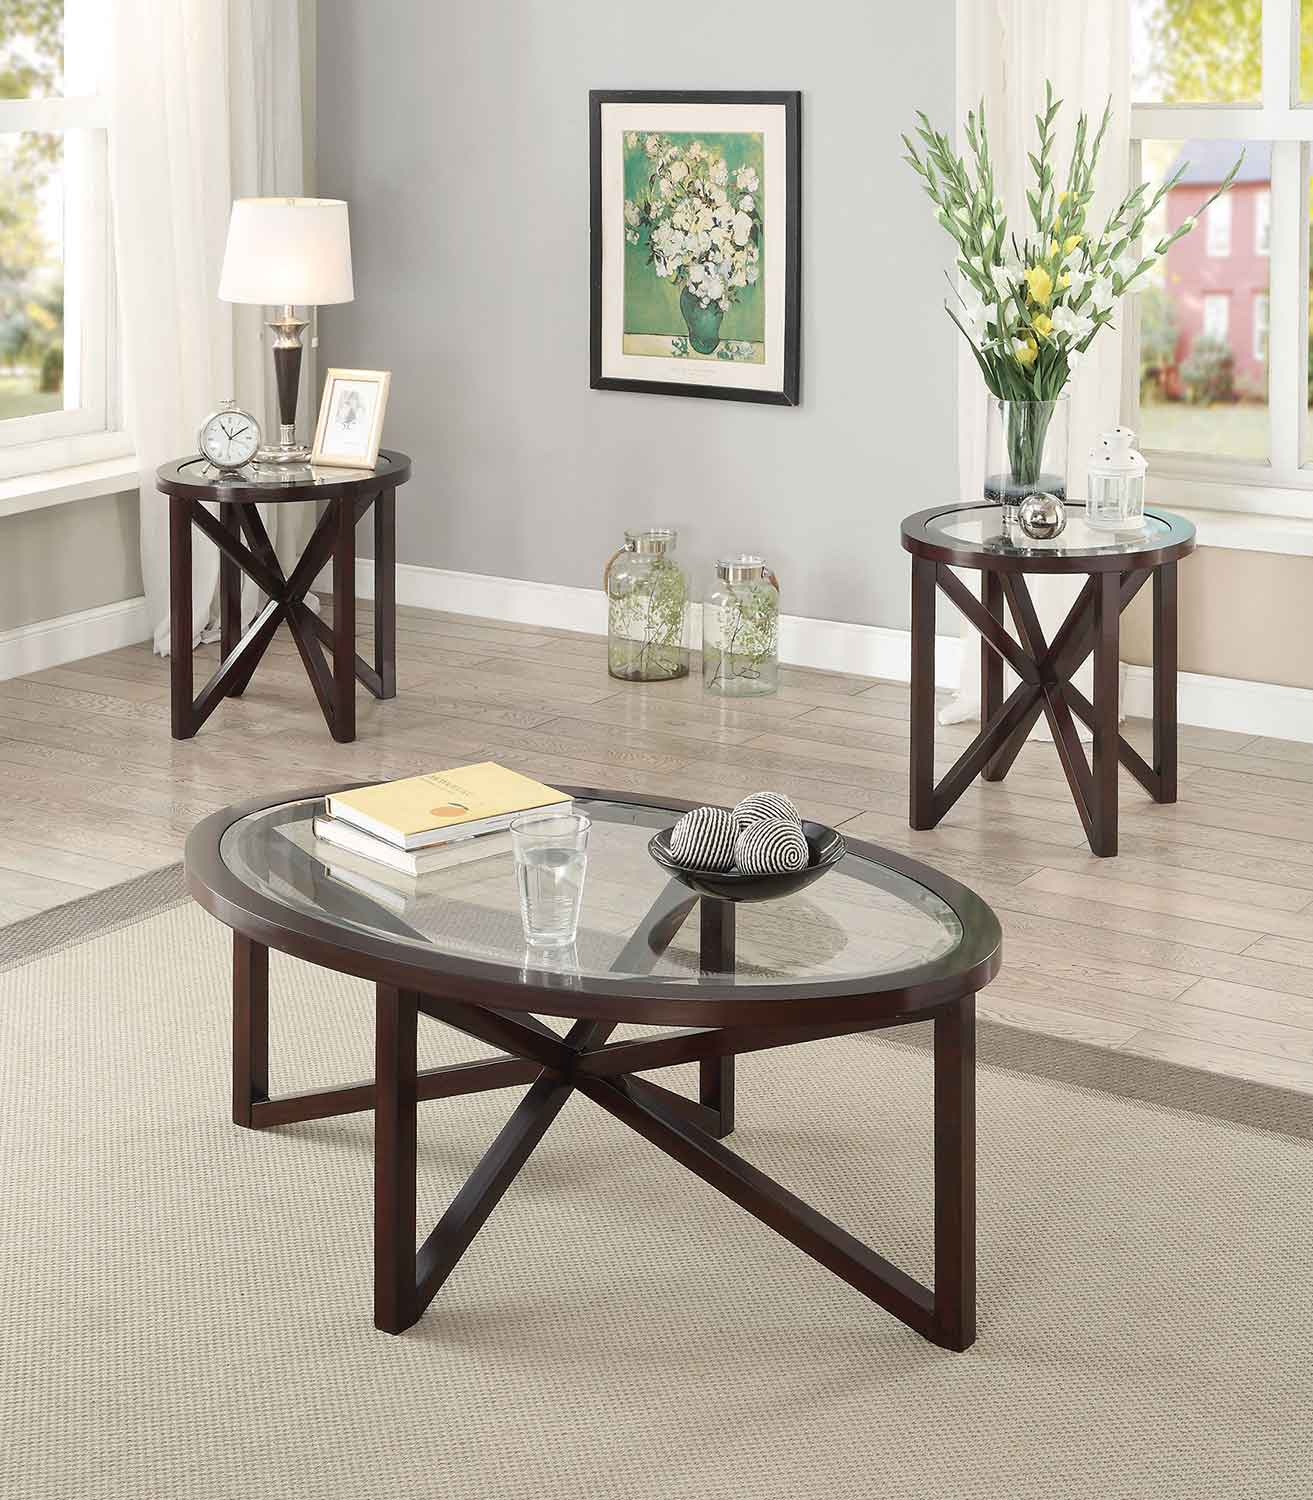 Coaster 701004 Occasional Coffee Table Set Cappuccino 701004 At